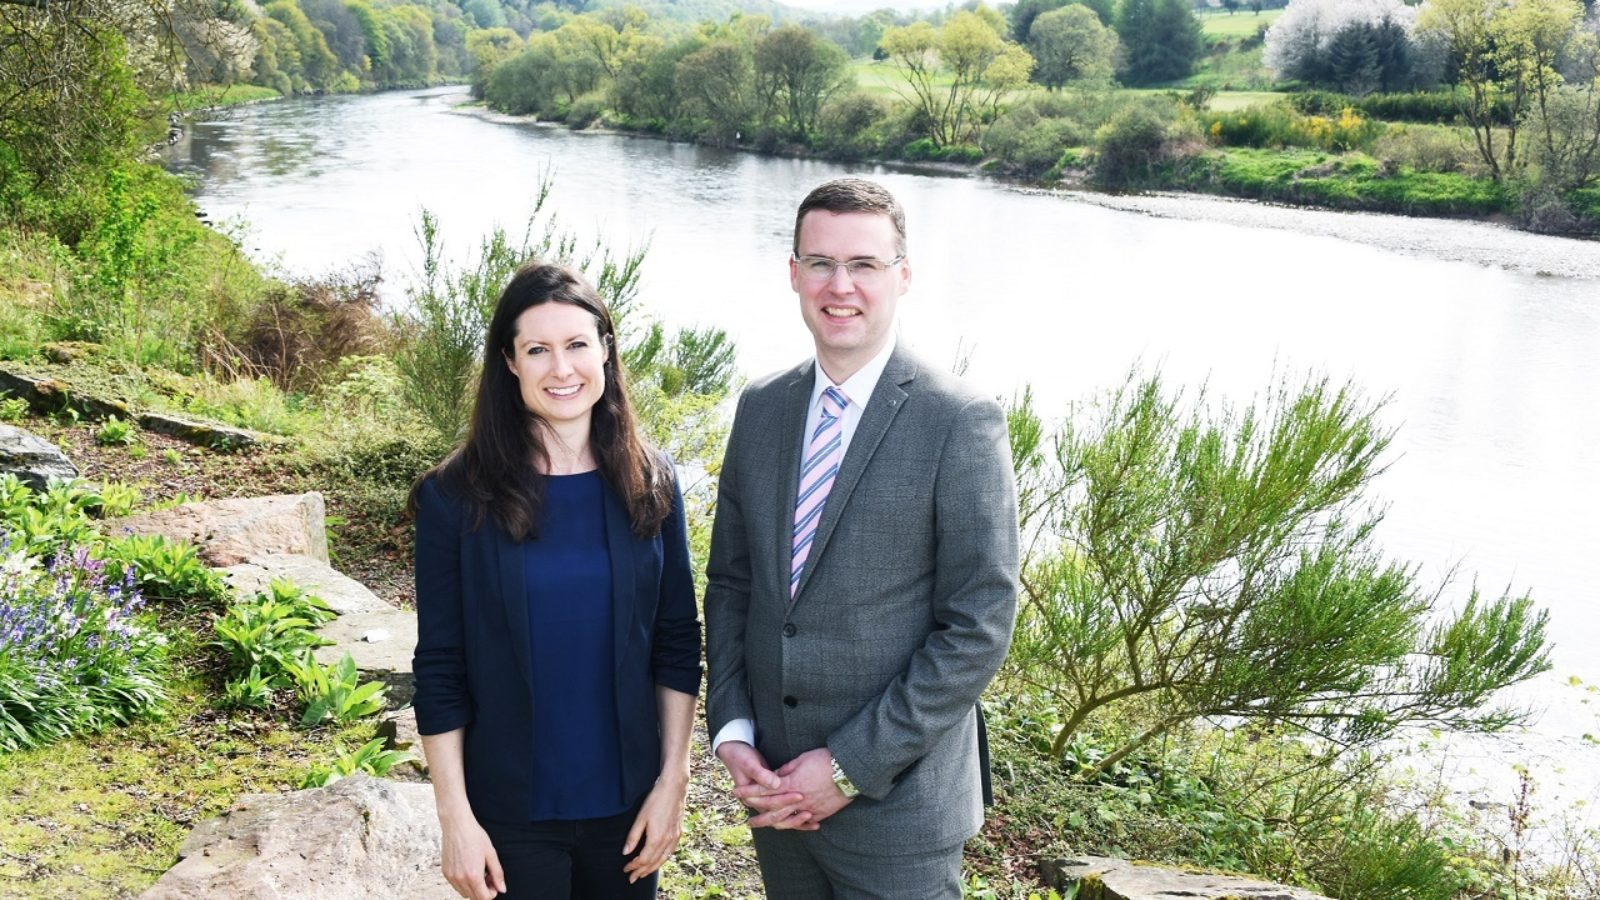 Dr Lorraine Hawkins, river director of Dee District Salmon Fishery Board and River Dee Trust, and Peter Walker, managing director of Maryculter House